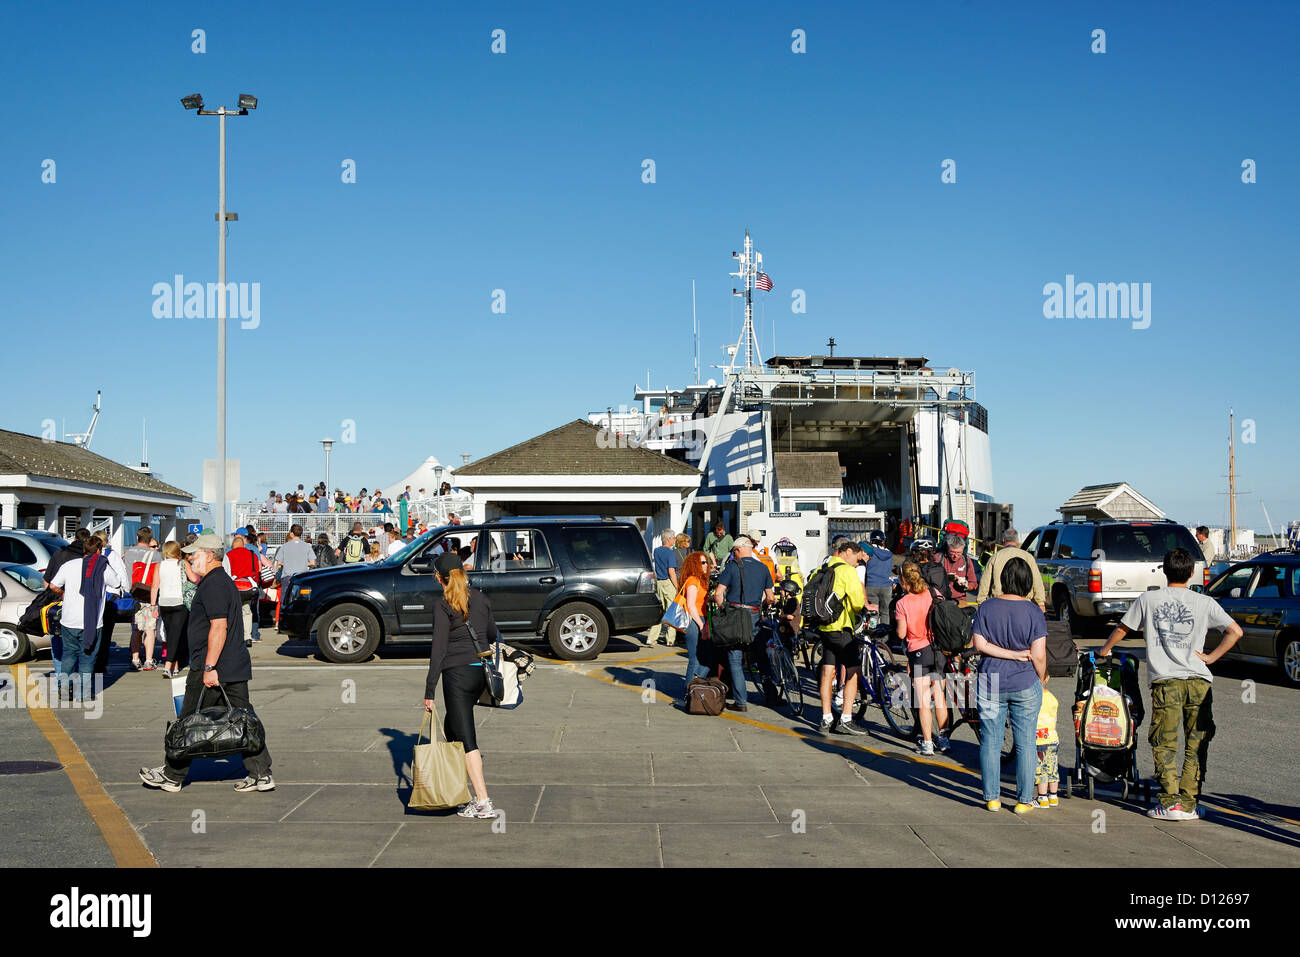 Passengers boarding ferry from Vineyard Haven for Woods Hole, Martha's Vineyard, Massachusetts, USA - Stock Image